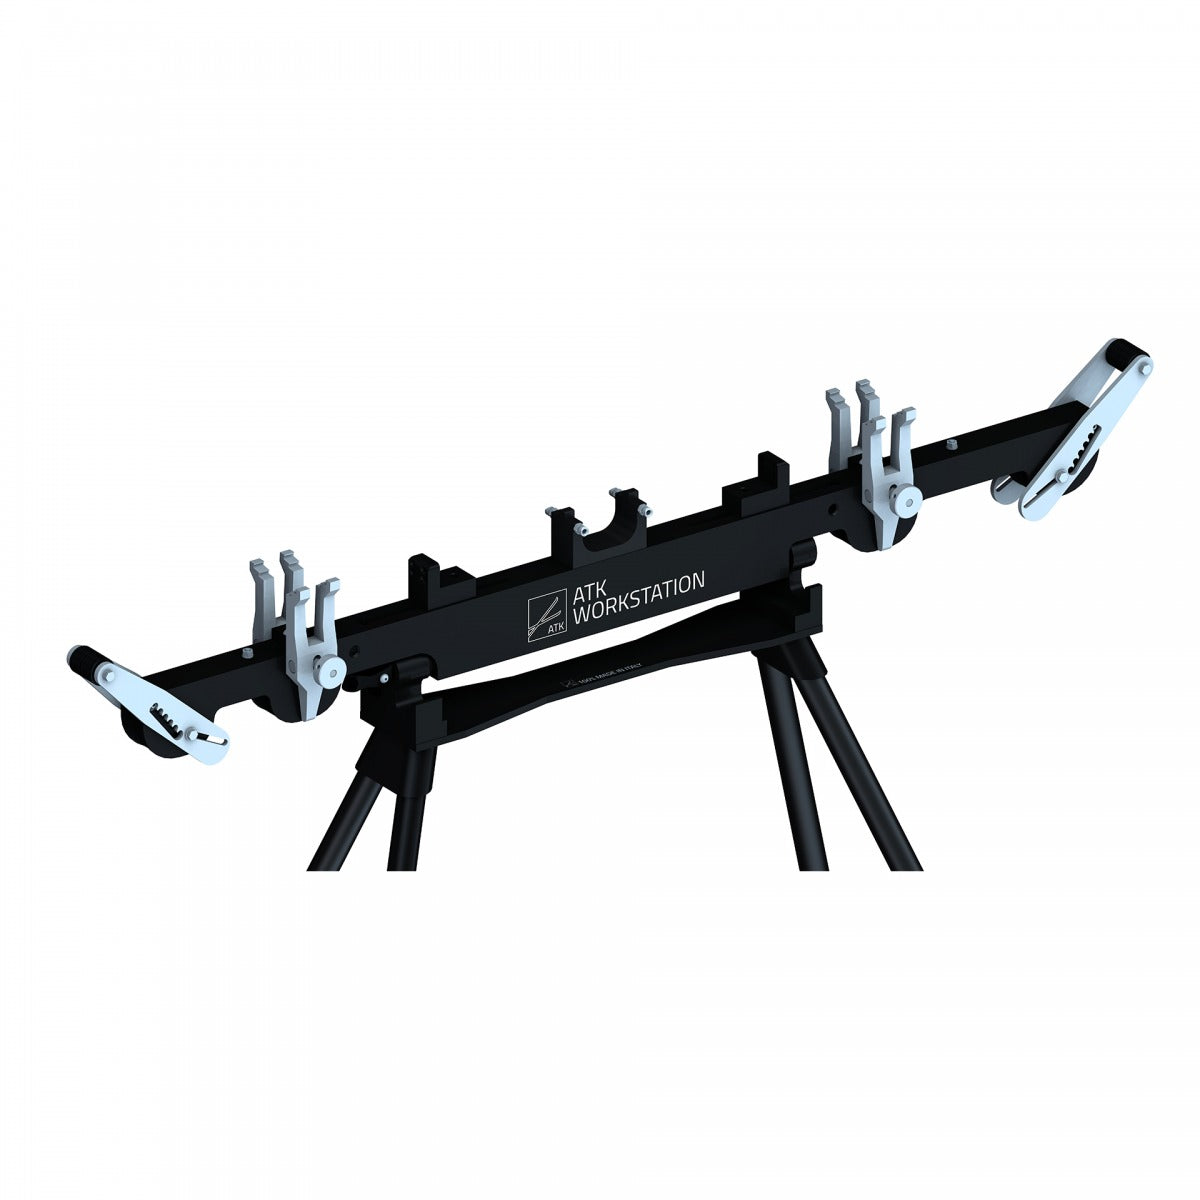 ATK Workstation, Bindings - Hagan Ski Mountaineering